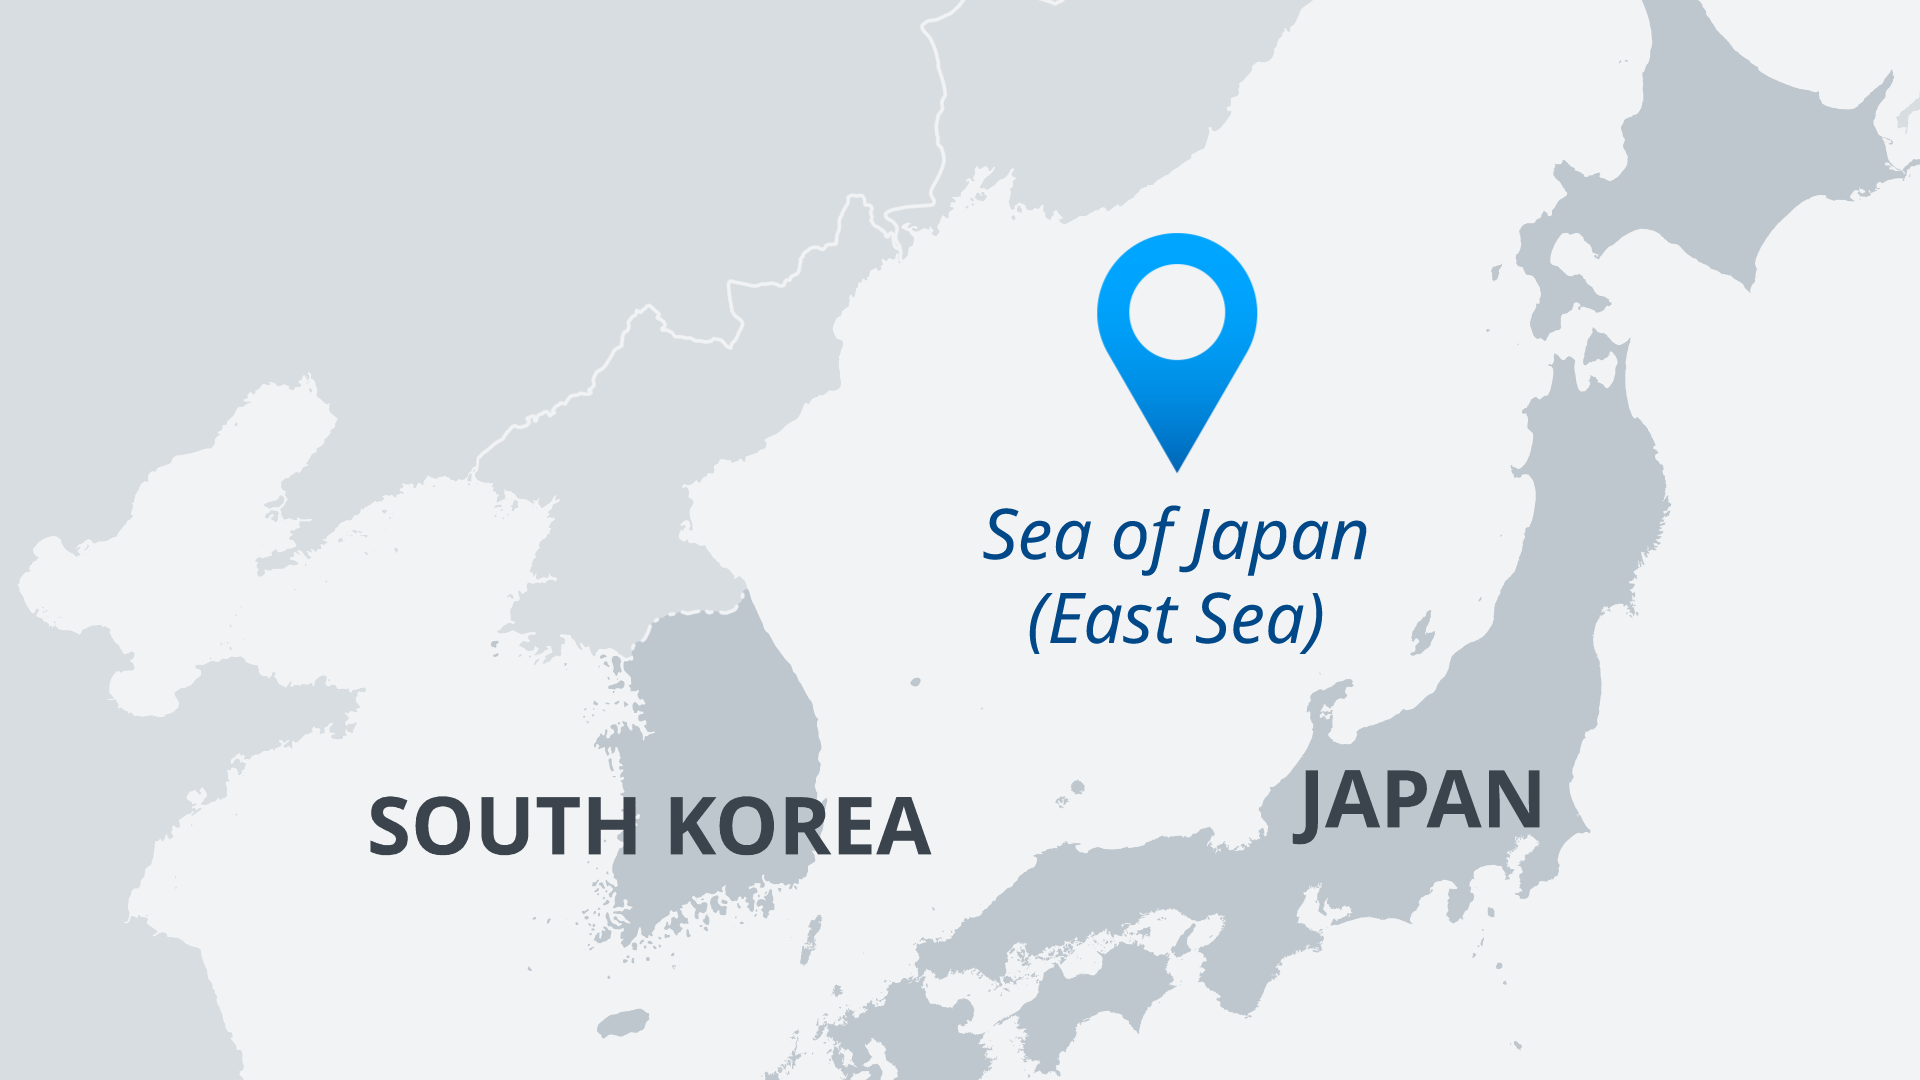 A map showing Japan, South Korea and the body of water between them